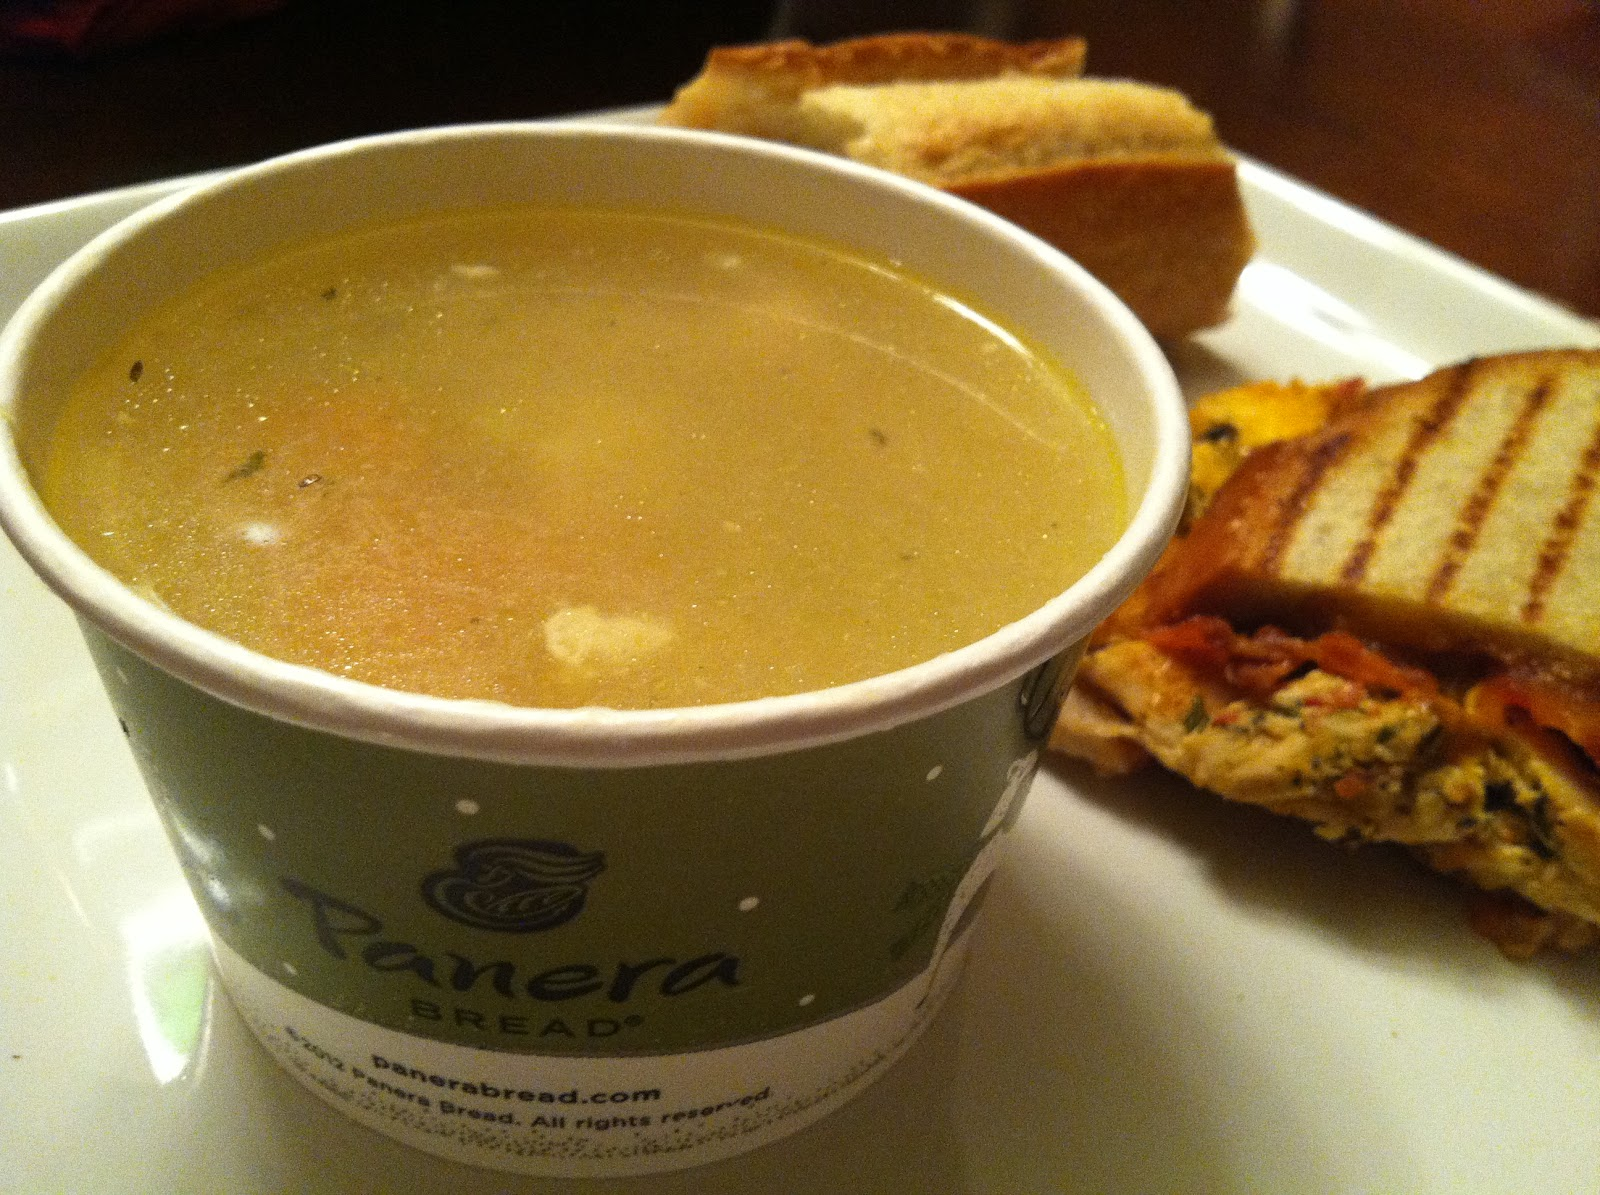 Panera bread coupons for soup